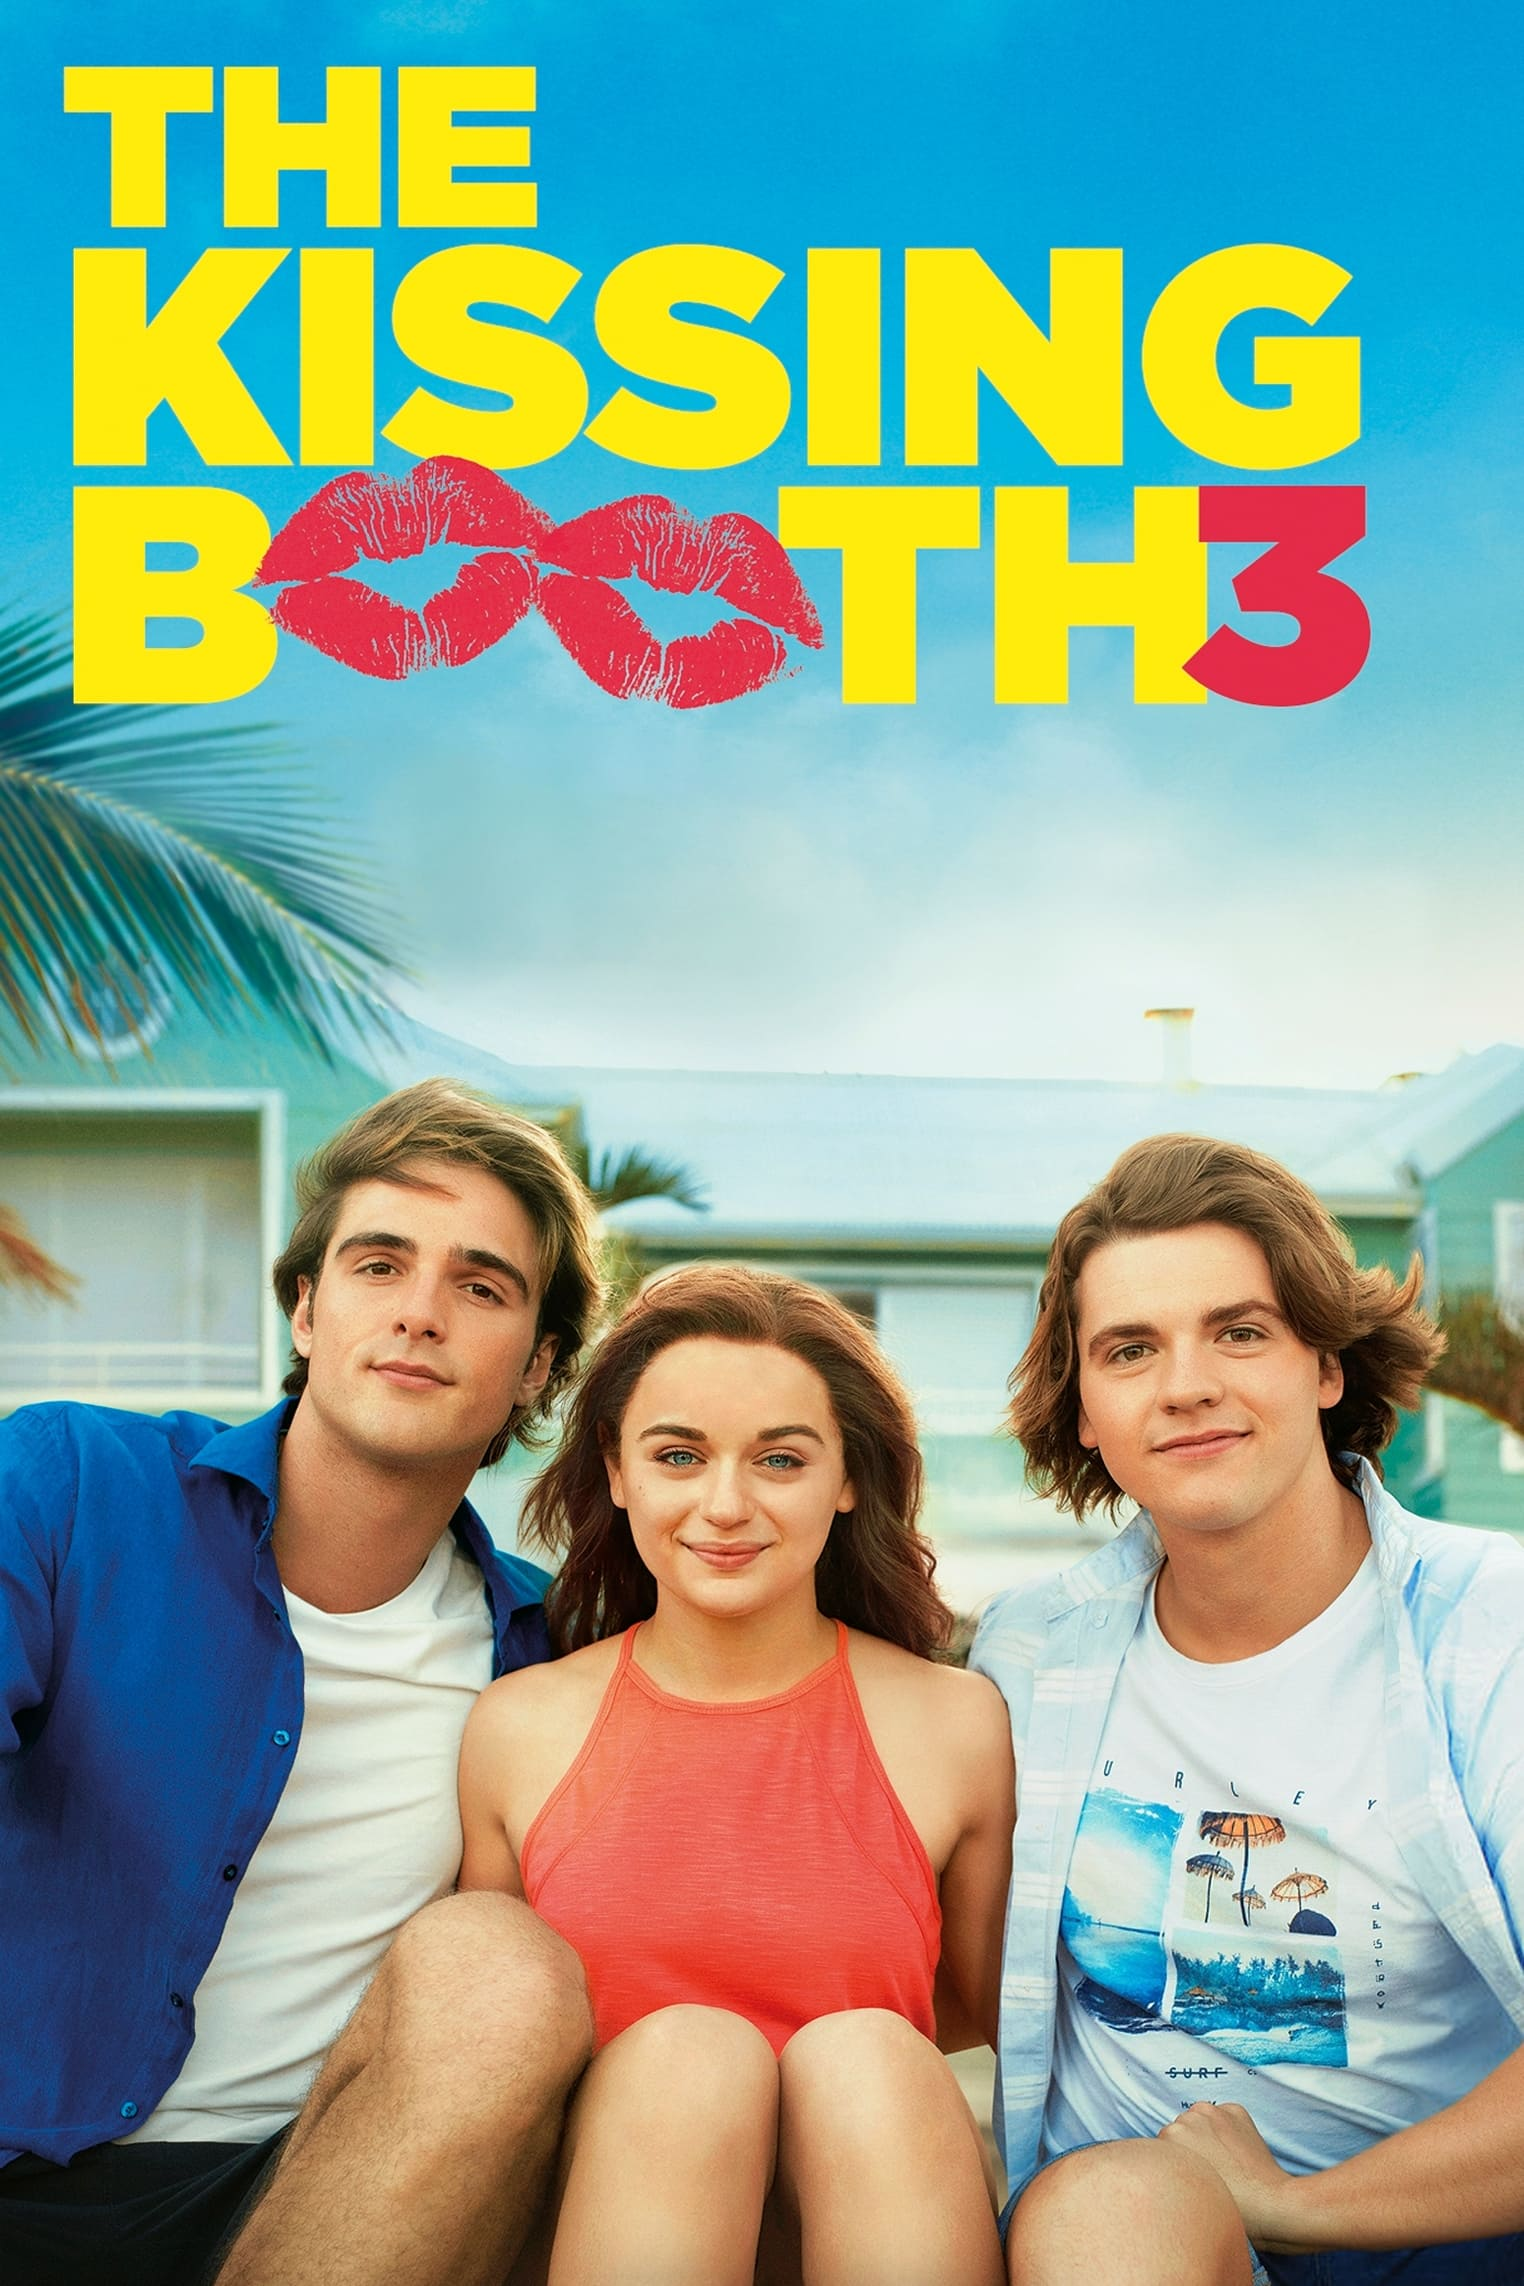 The Kissing Booth 3 2021 FULLHD Movie